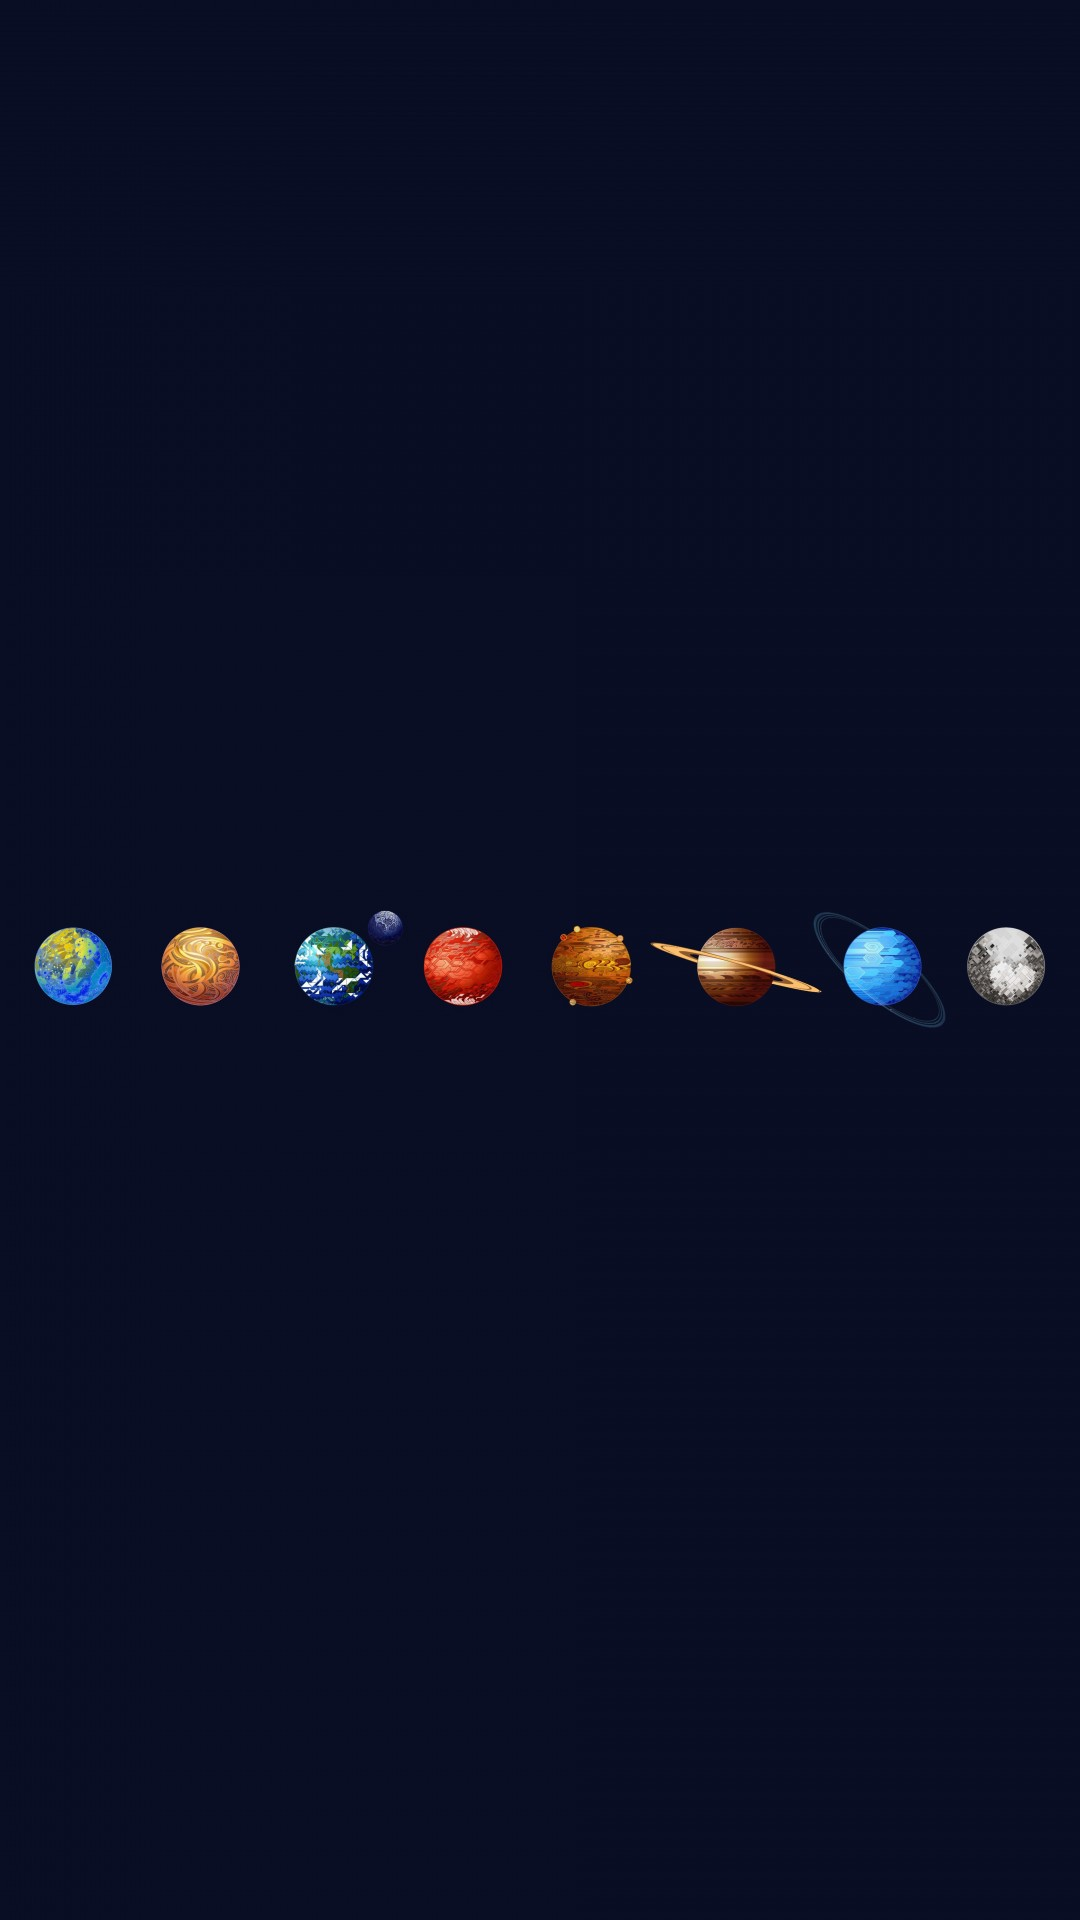 Solar System Wallpaper for LG G2